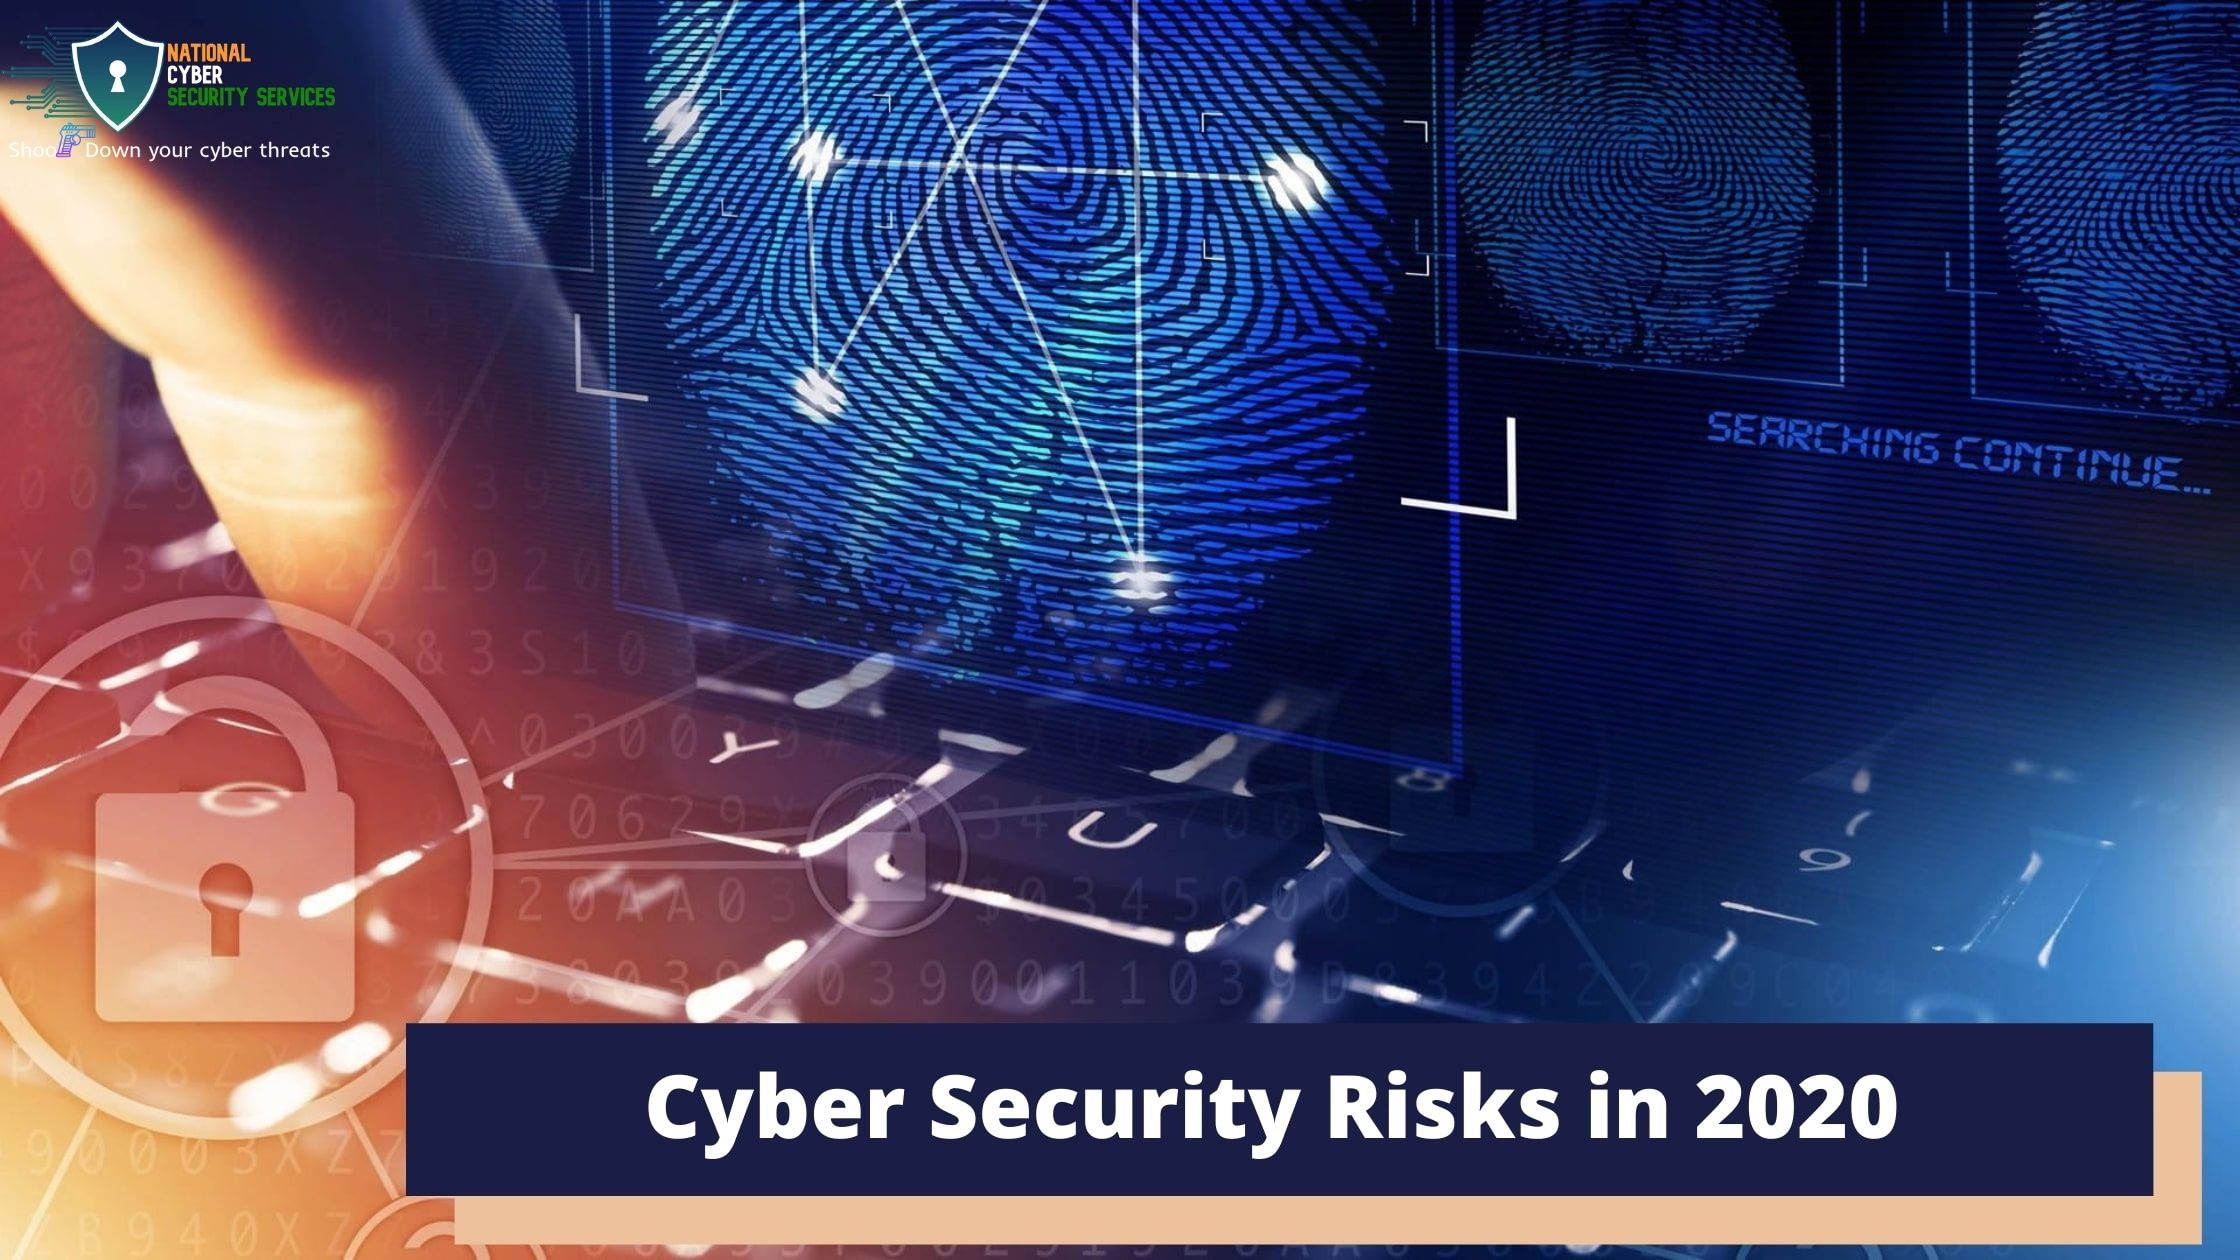 Cyber Security Risks in 2020